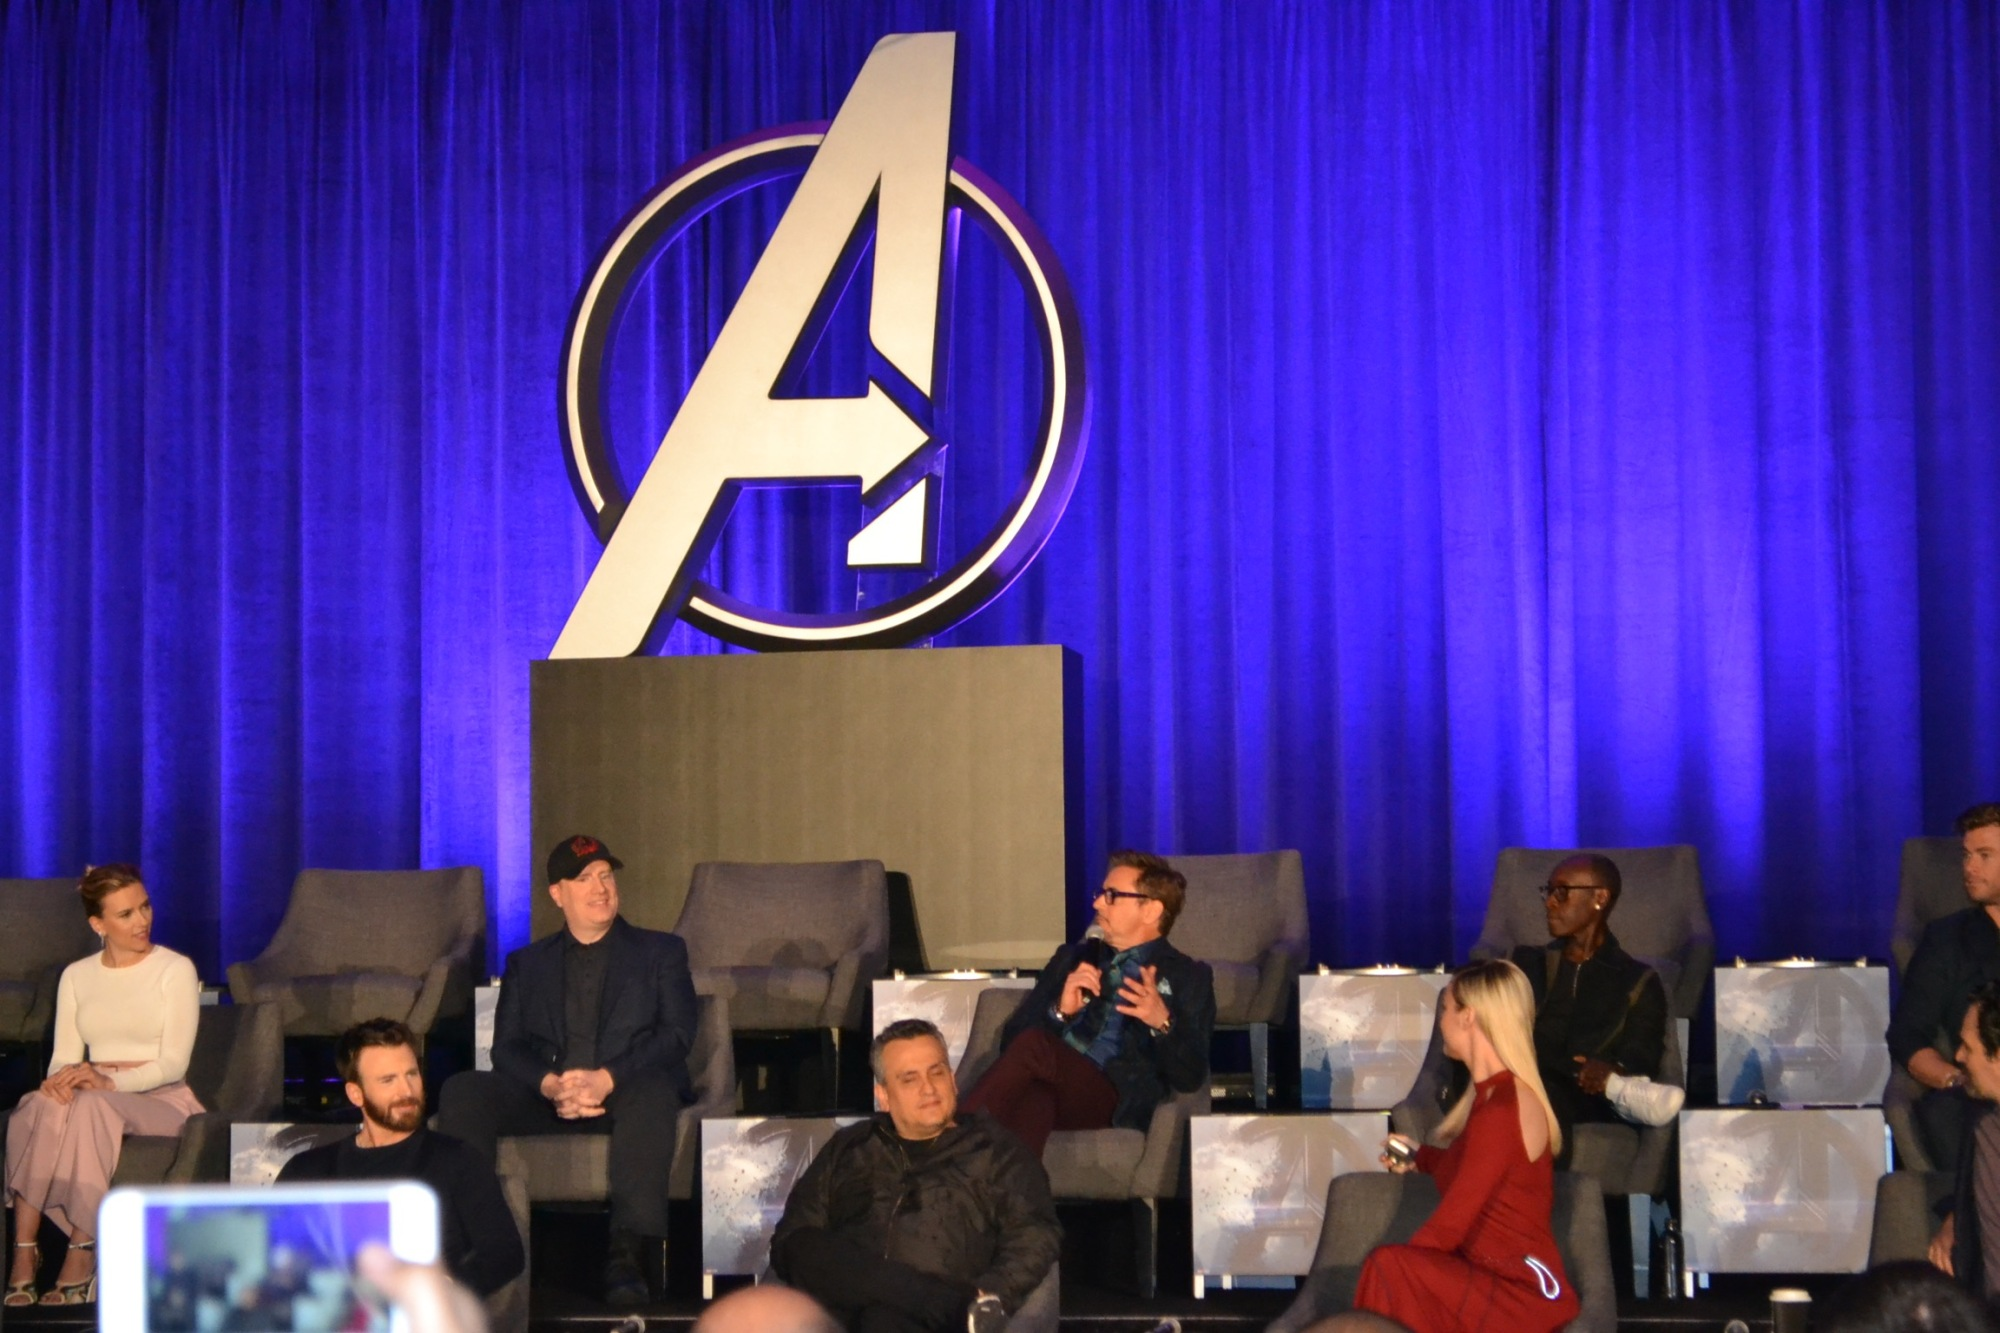 dsc 0523 Avengers: Endgame casts thoughts on the Marvel Cinematic Universes grand mosaic